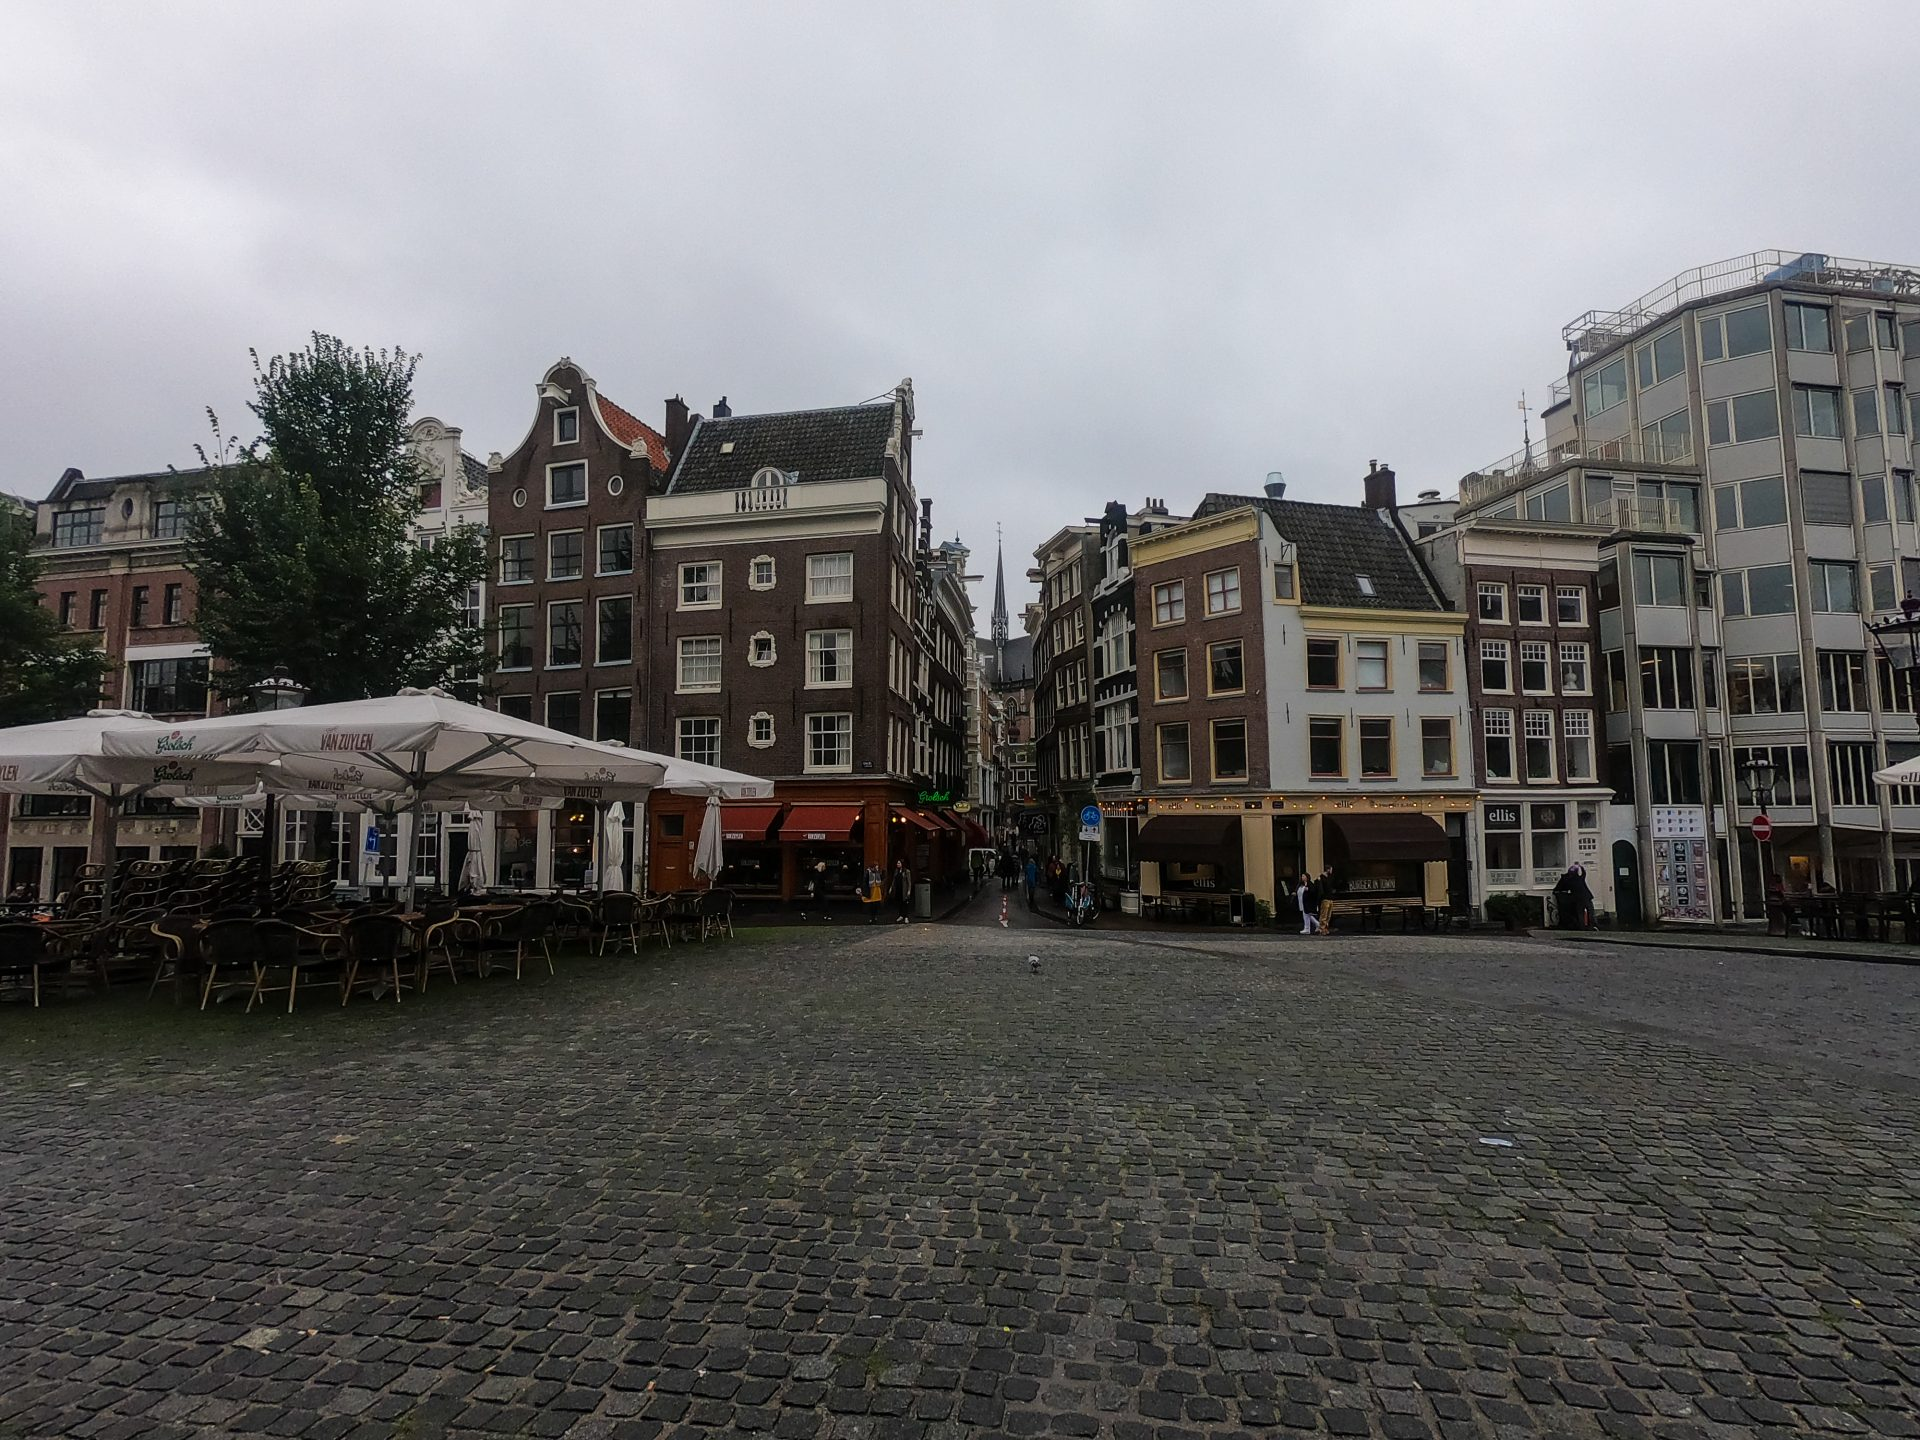 Houses-In-Amsterdam